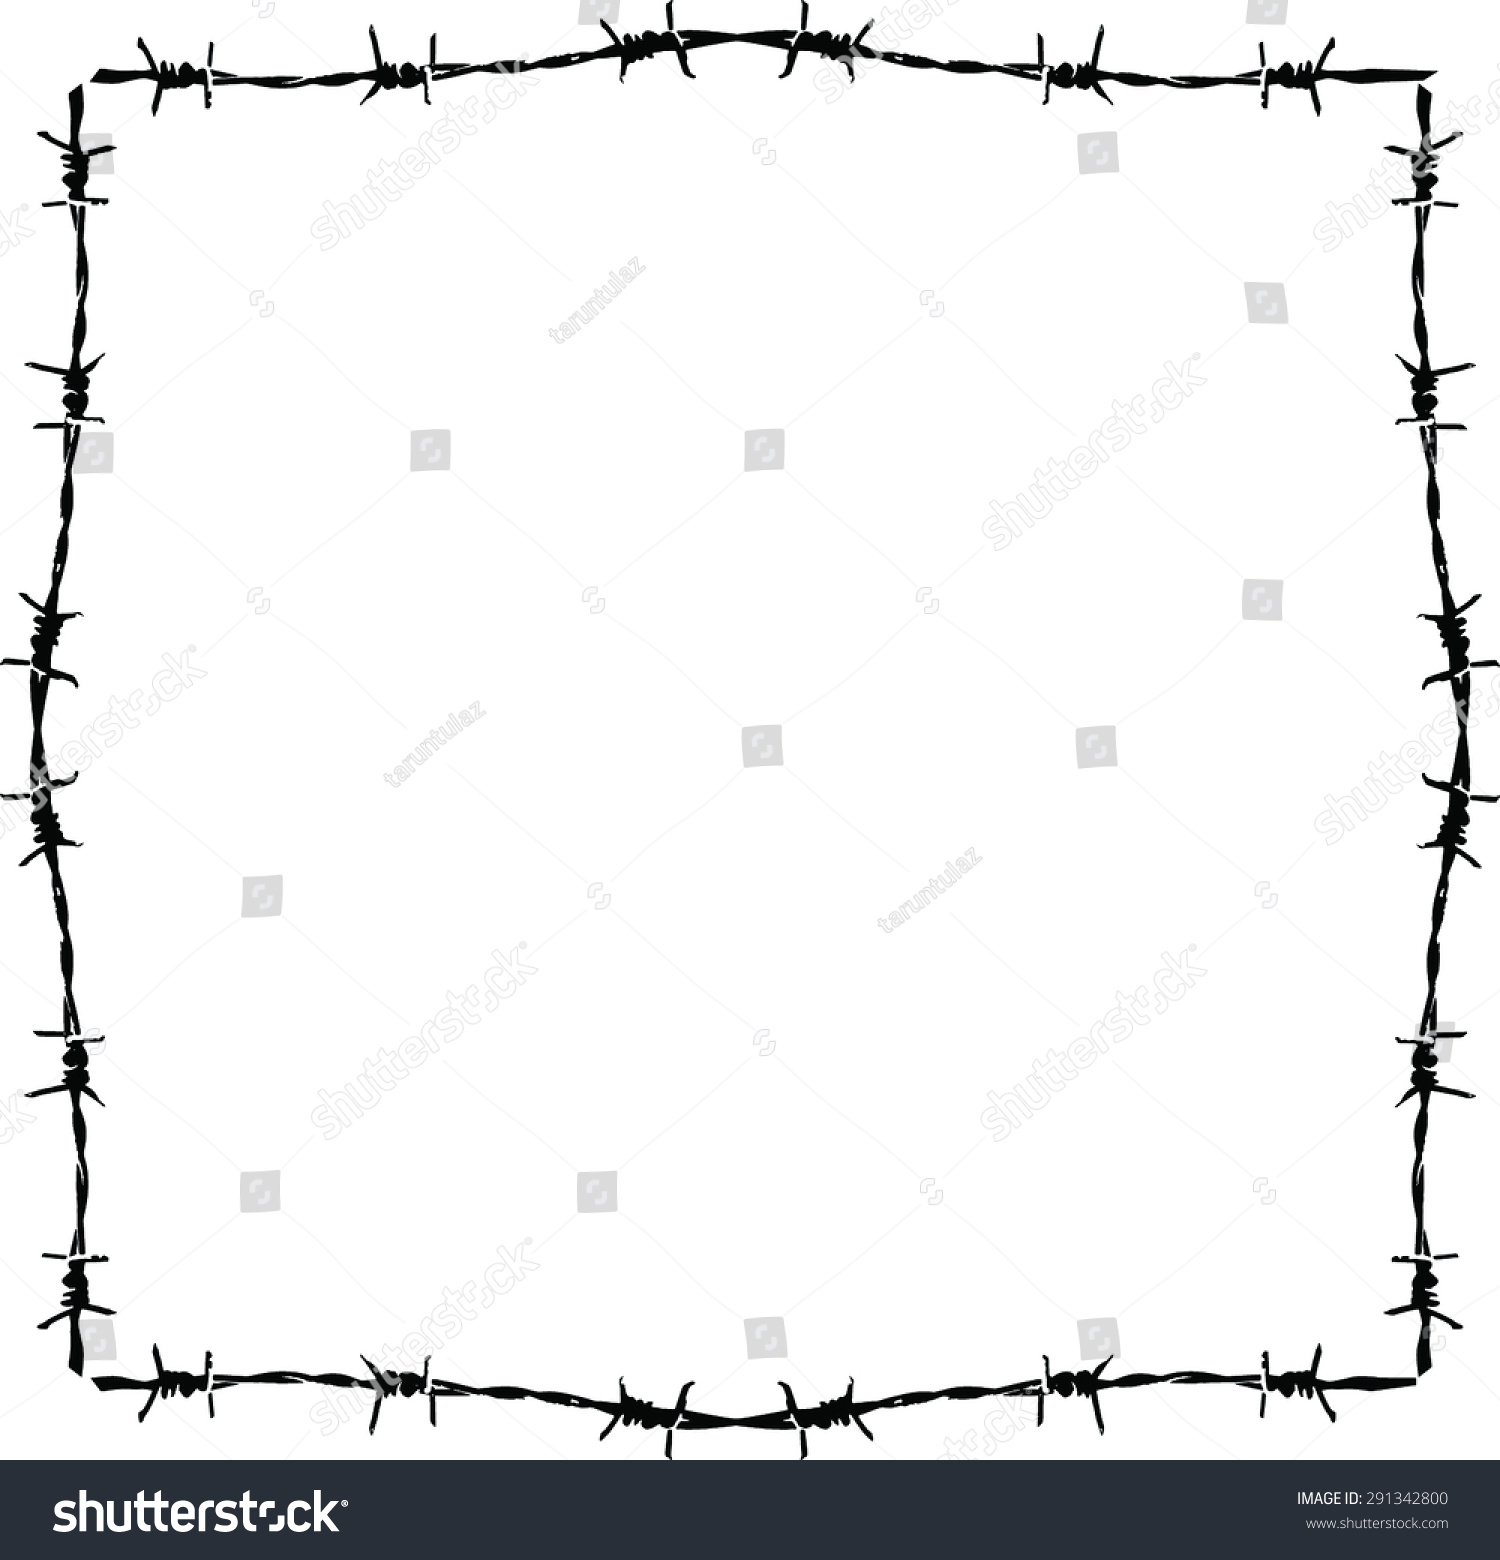 Background Barbed Wire Frame Stock Vector (2018) 291342800 ...